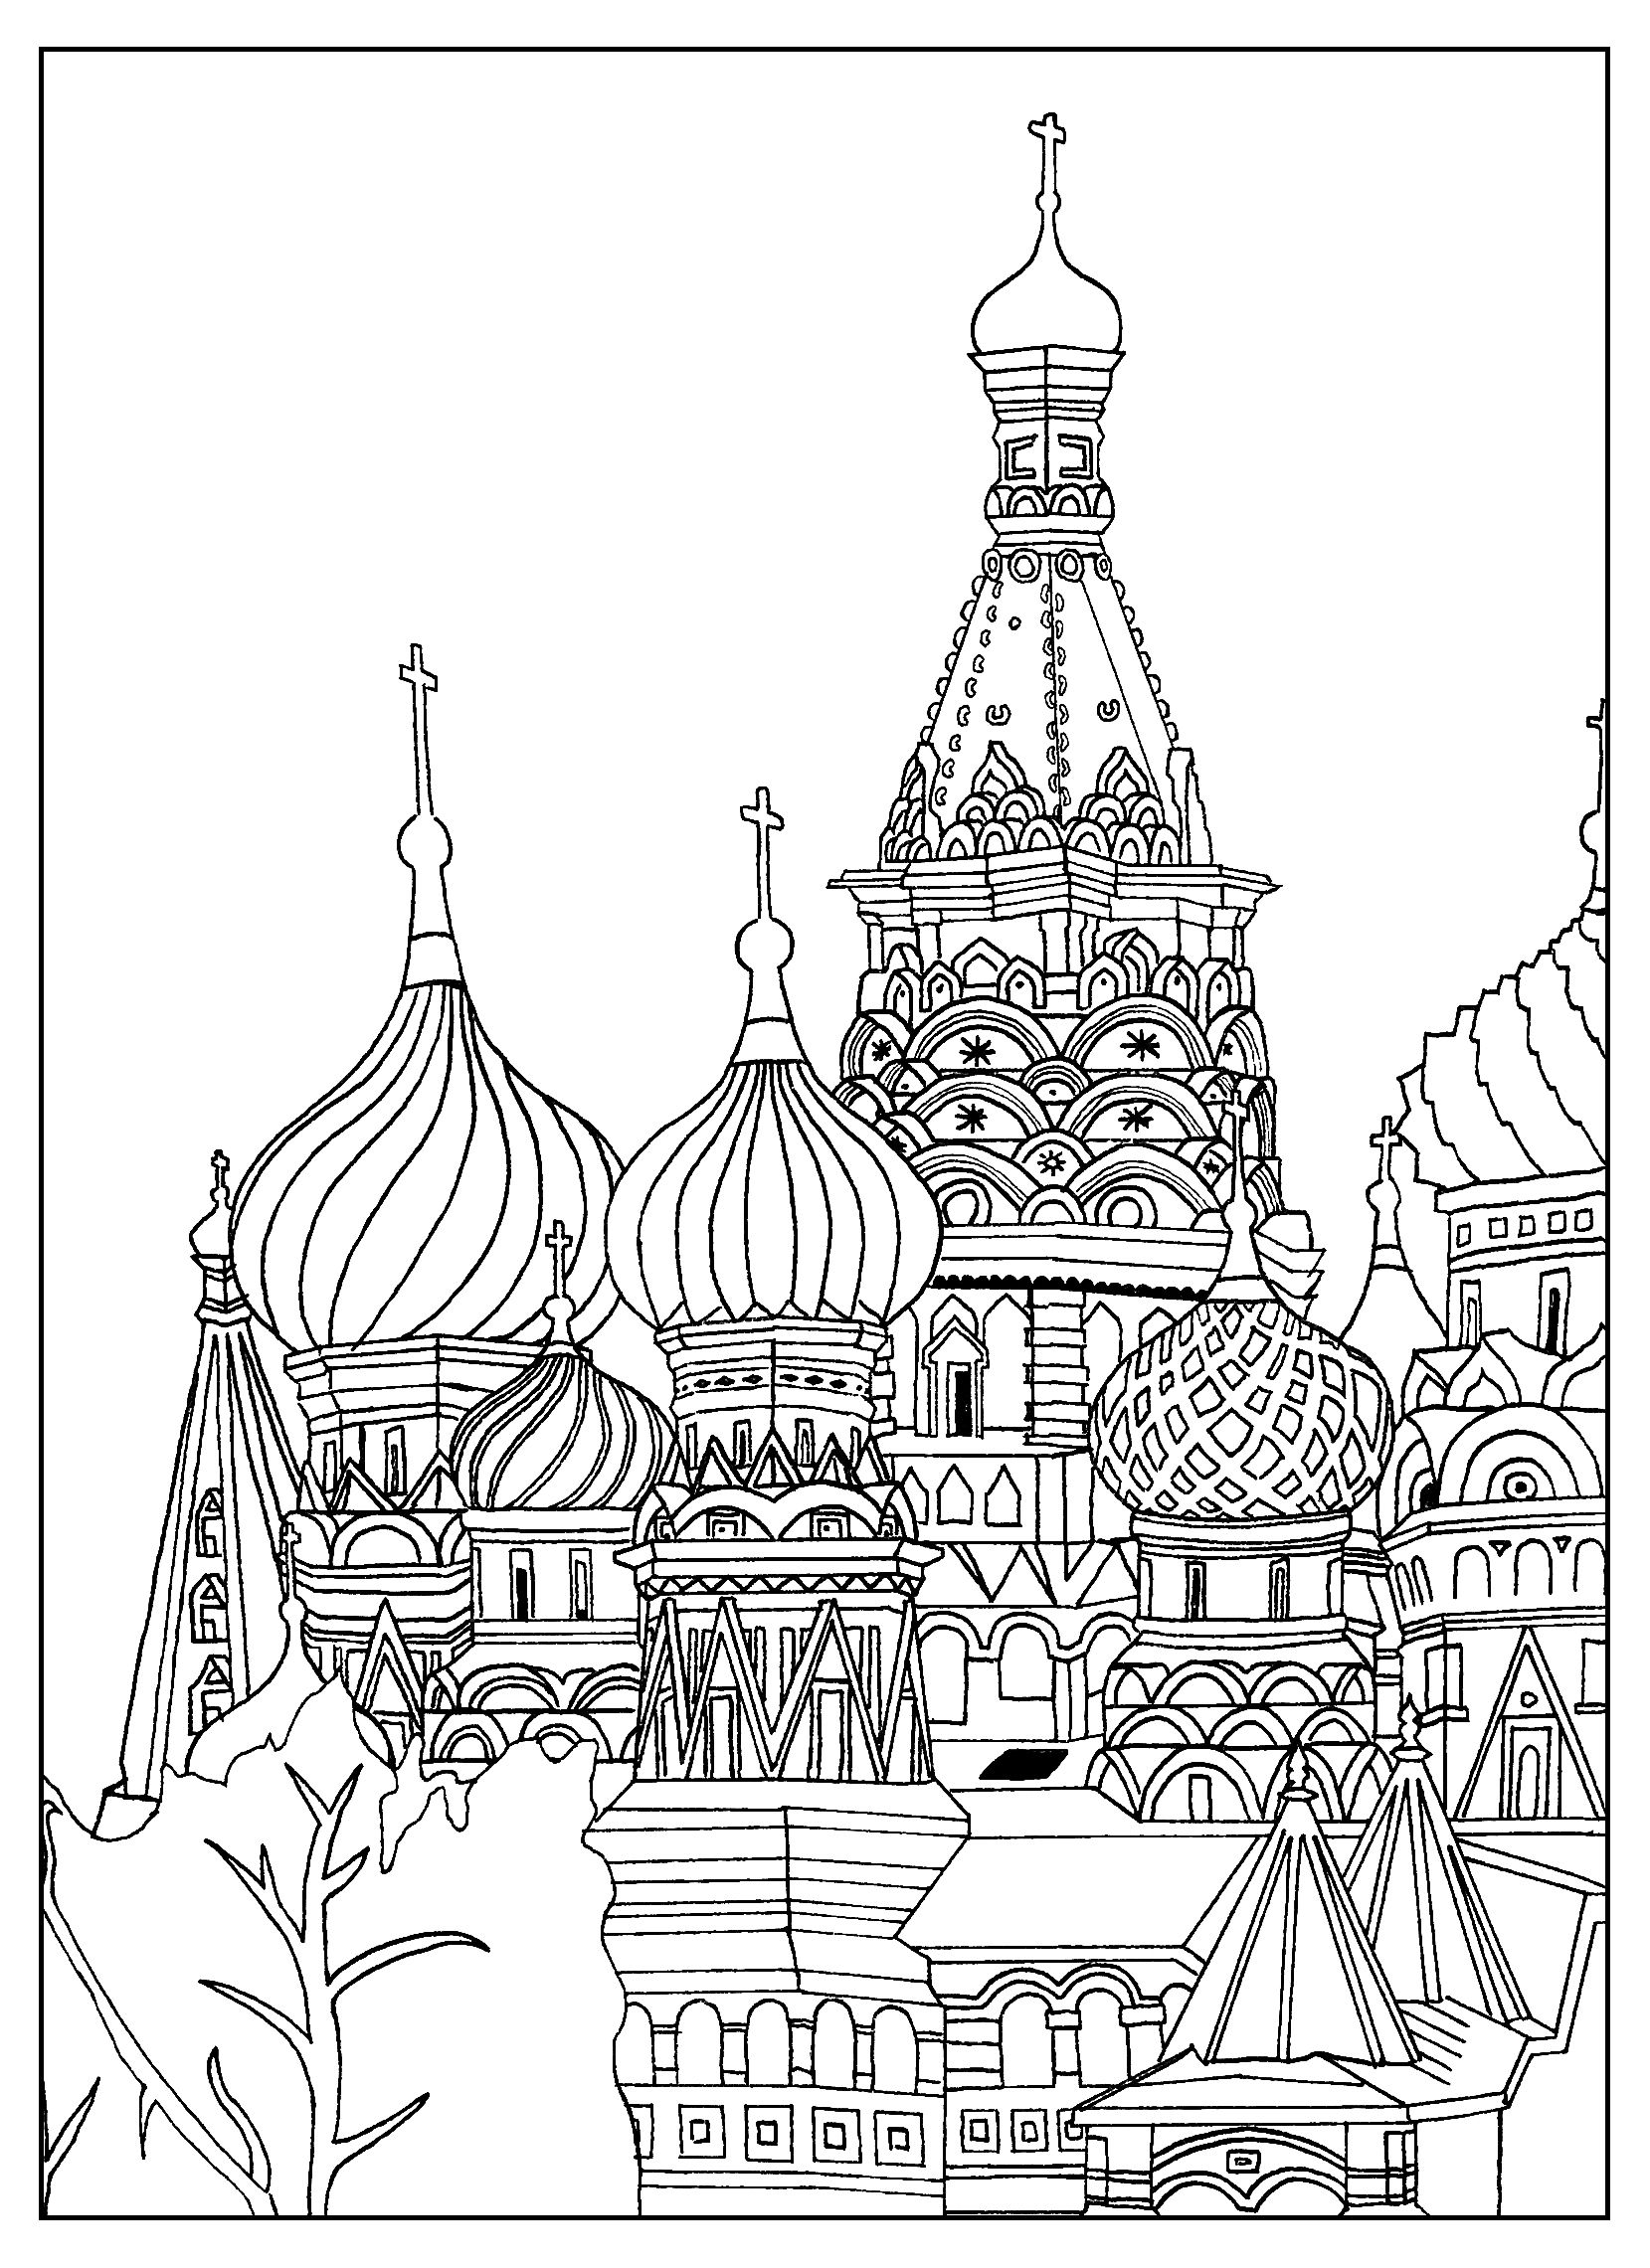 free coloring page of the saint basil u0027s cathedral in red